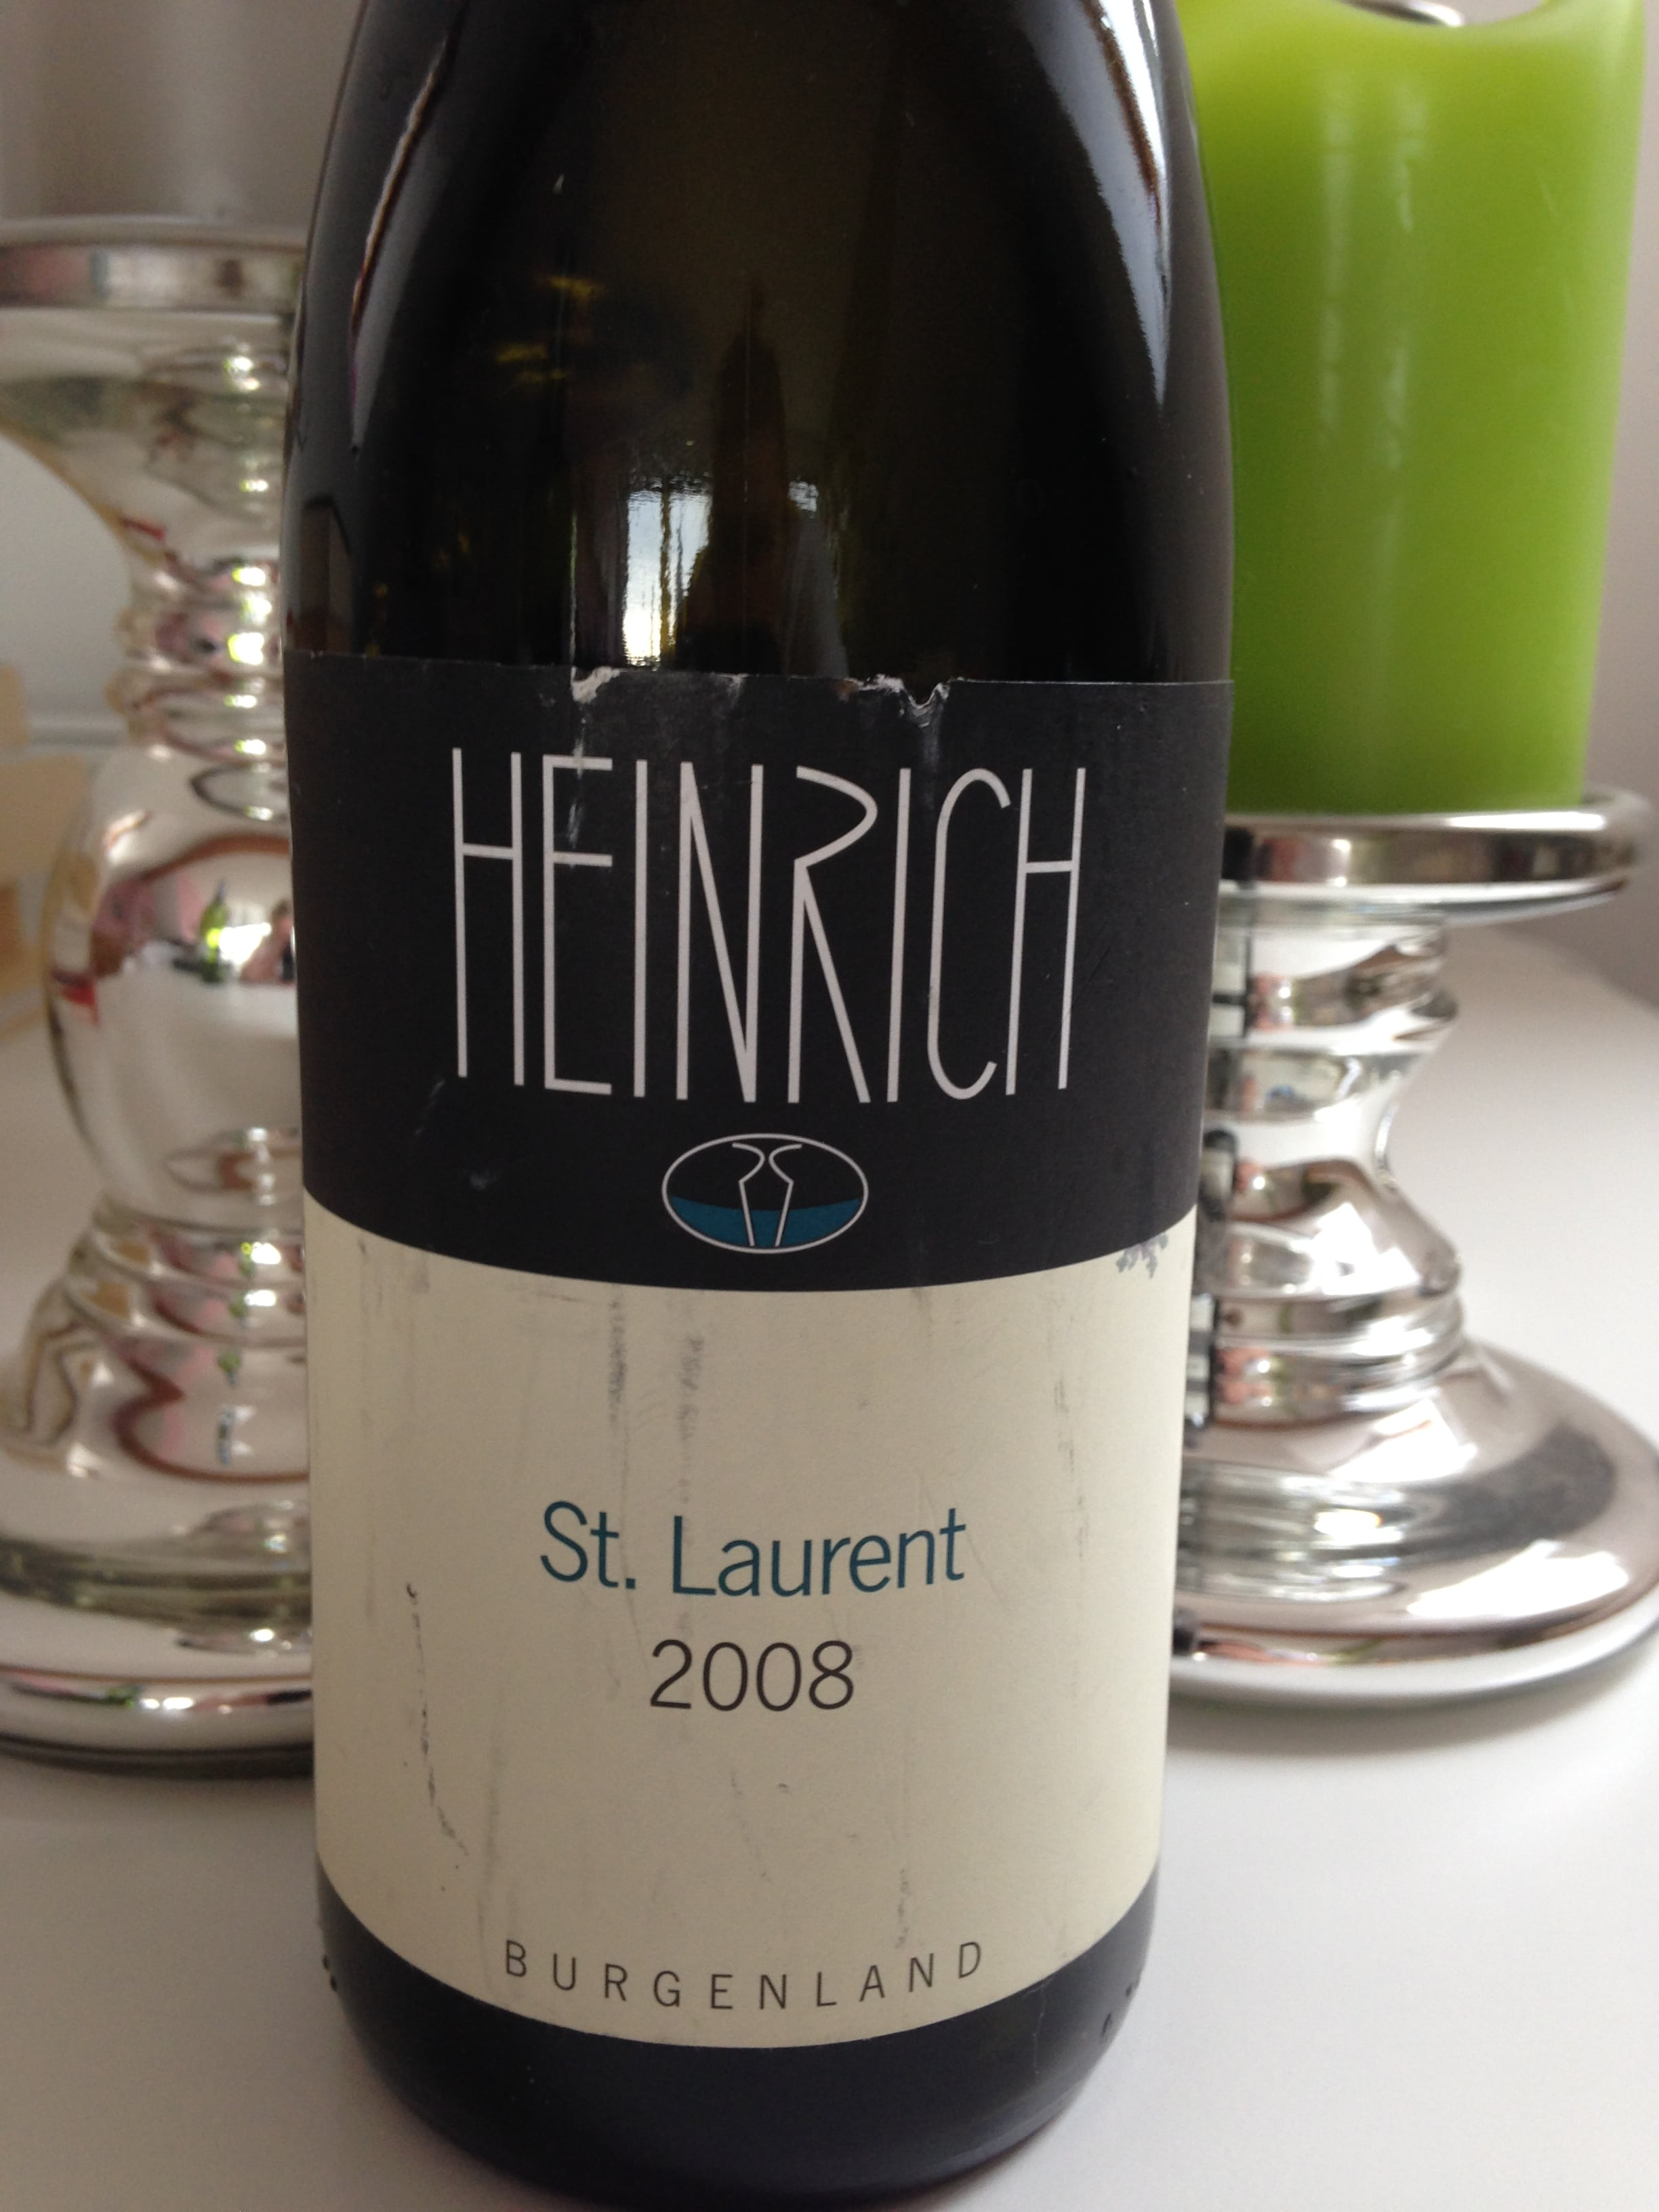 Heinrich St. Laurent 2008